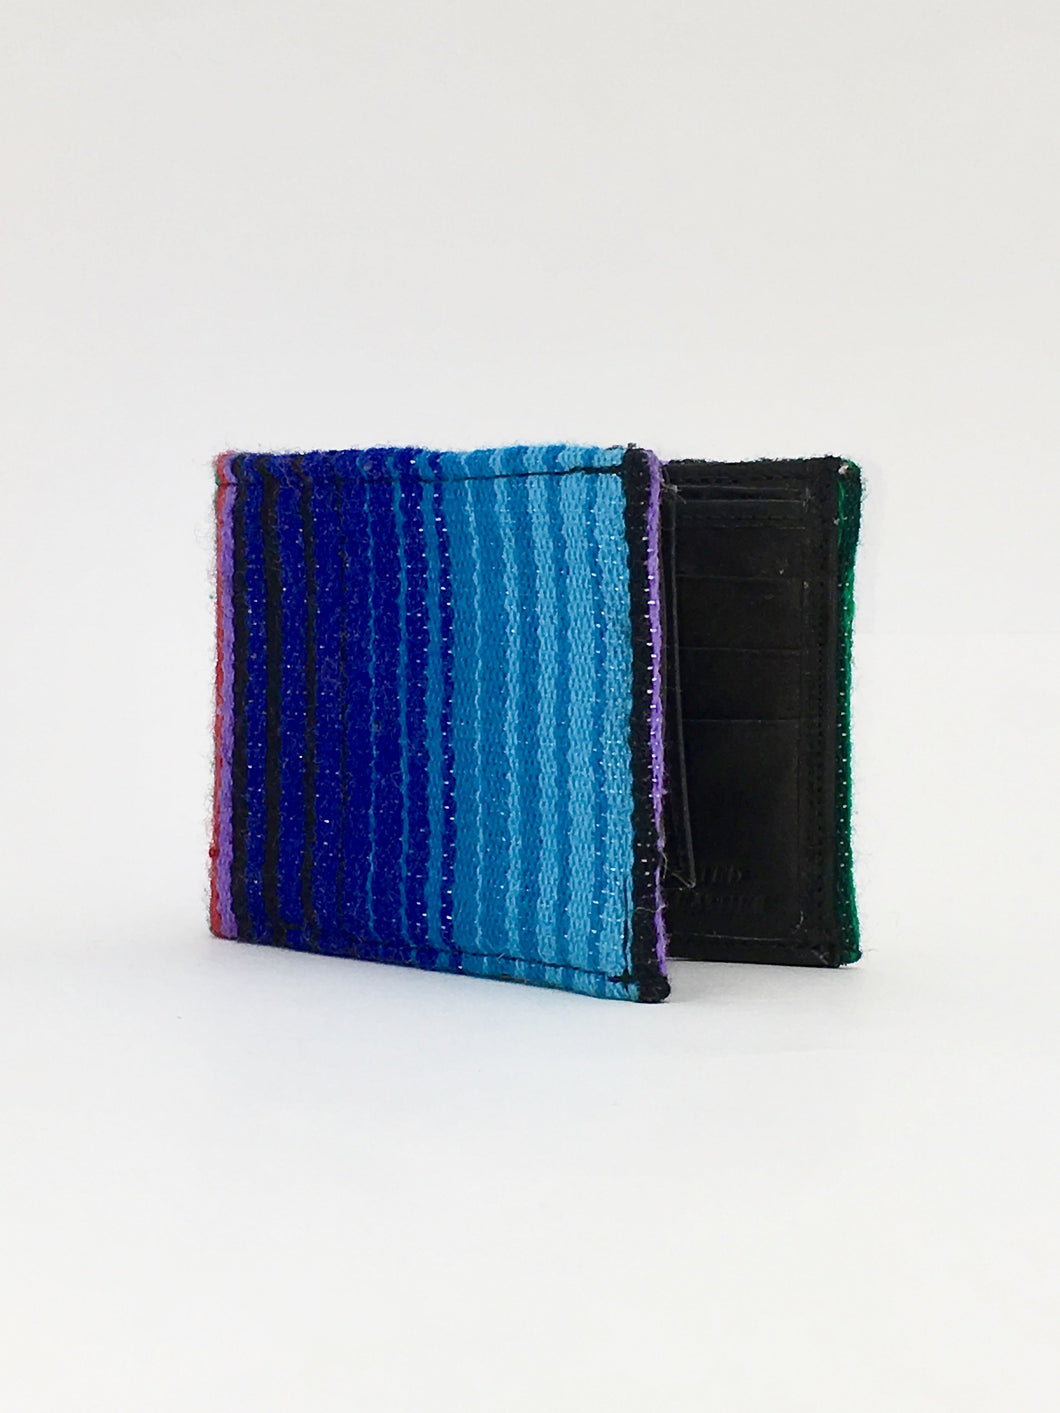 Blue and purple woven sarape textile handcrafted billfold wallet